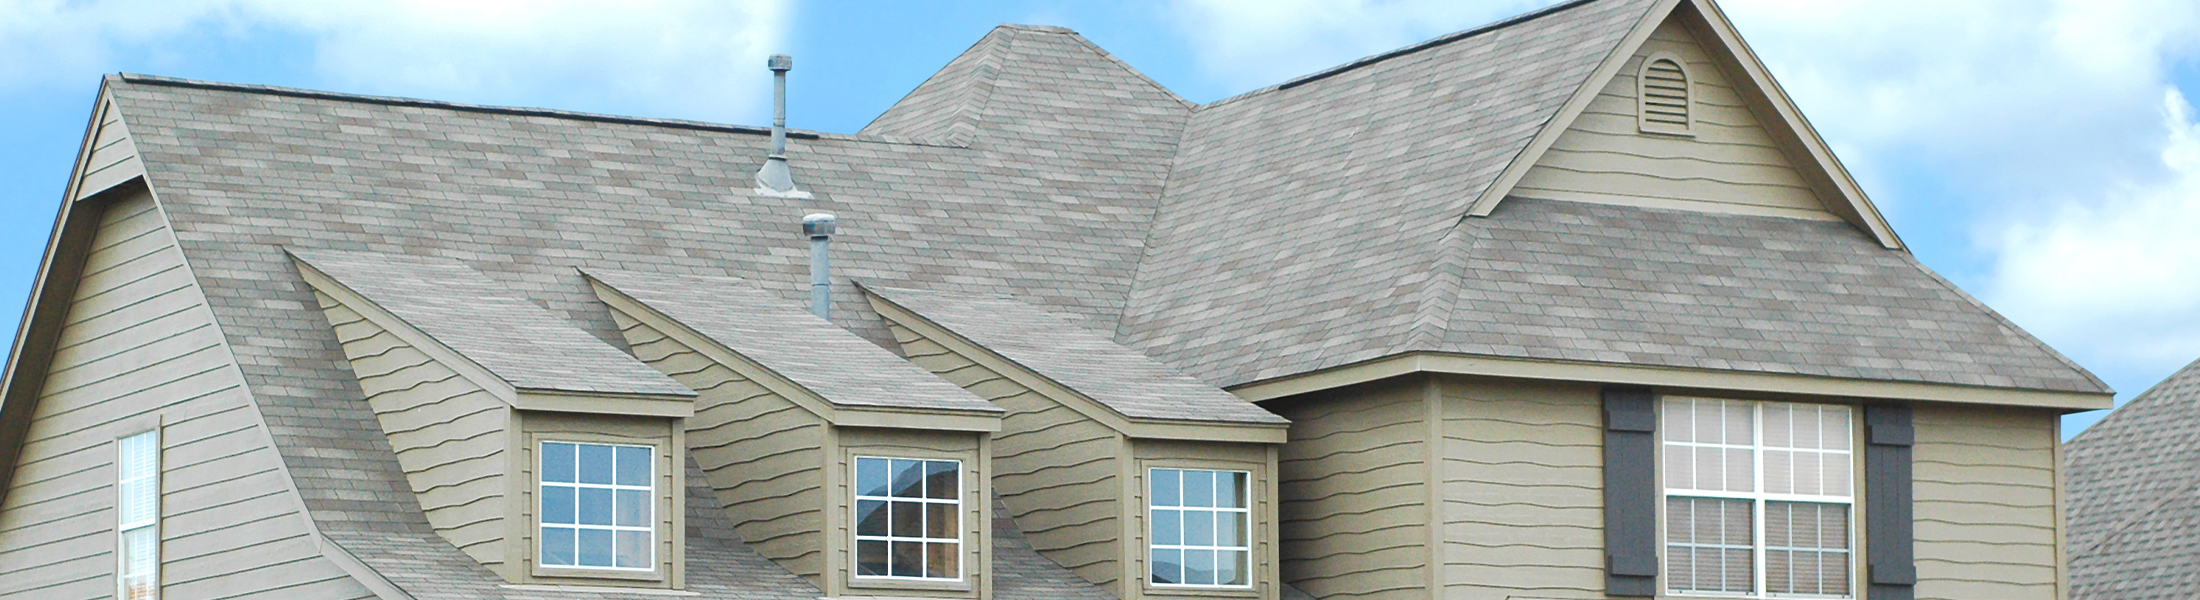 Gassert Roofing Images